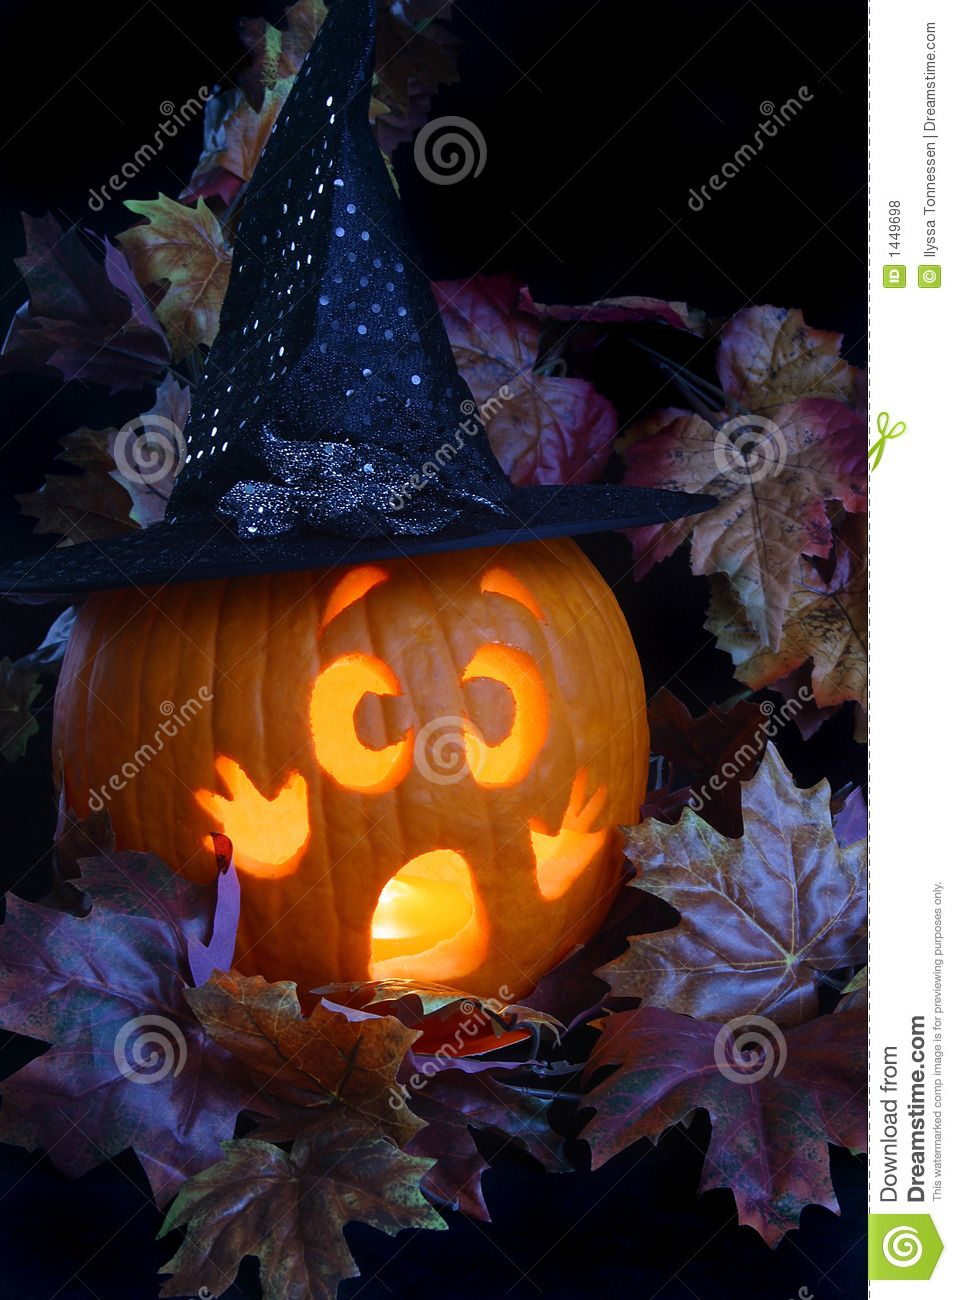 Photo about A frightened jackolantern dressed as a witch in a patch of leaves. Image of decoration, holidays, pumpkin - 1449698 #pumpkindecorating